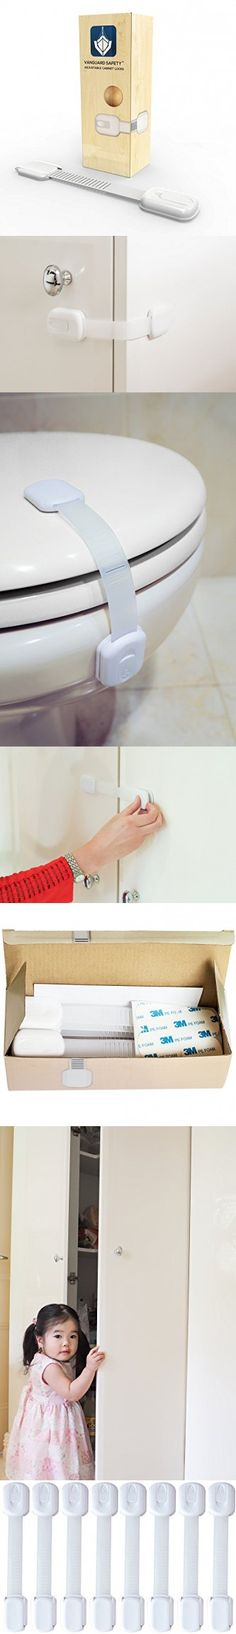 8 Adjustable Child Safety Locks (White) - BONUS Spare Tape - Vanguard Safety Adjustable Cabinet Locks with 3M Adhesive for Cabinets & Drawers - Easy Installation, Ideal for Home Safety ...